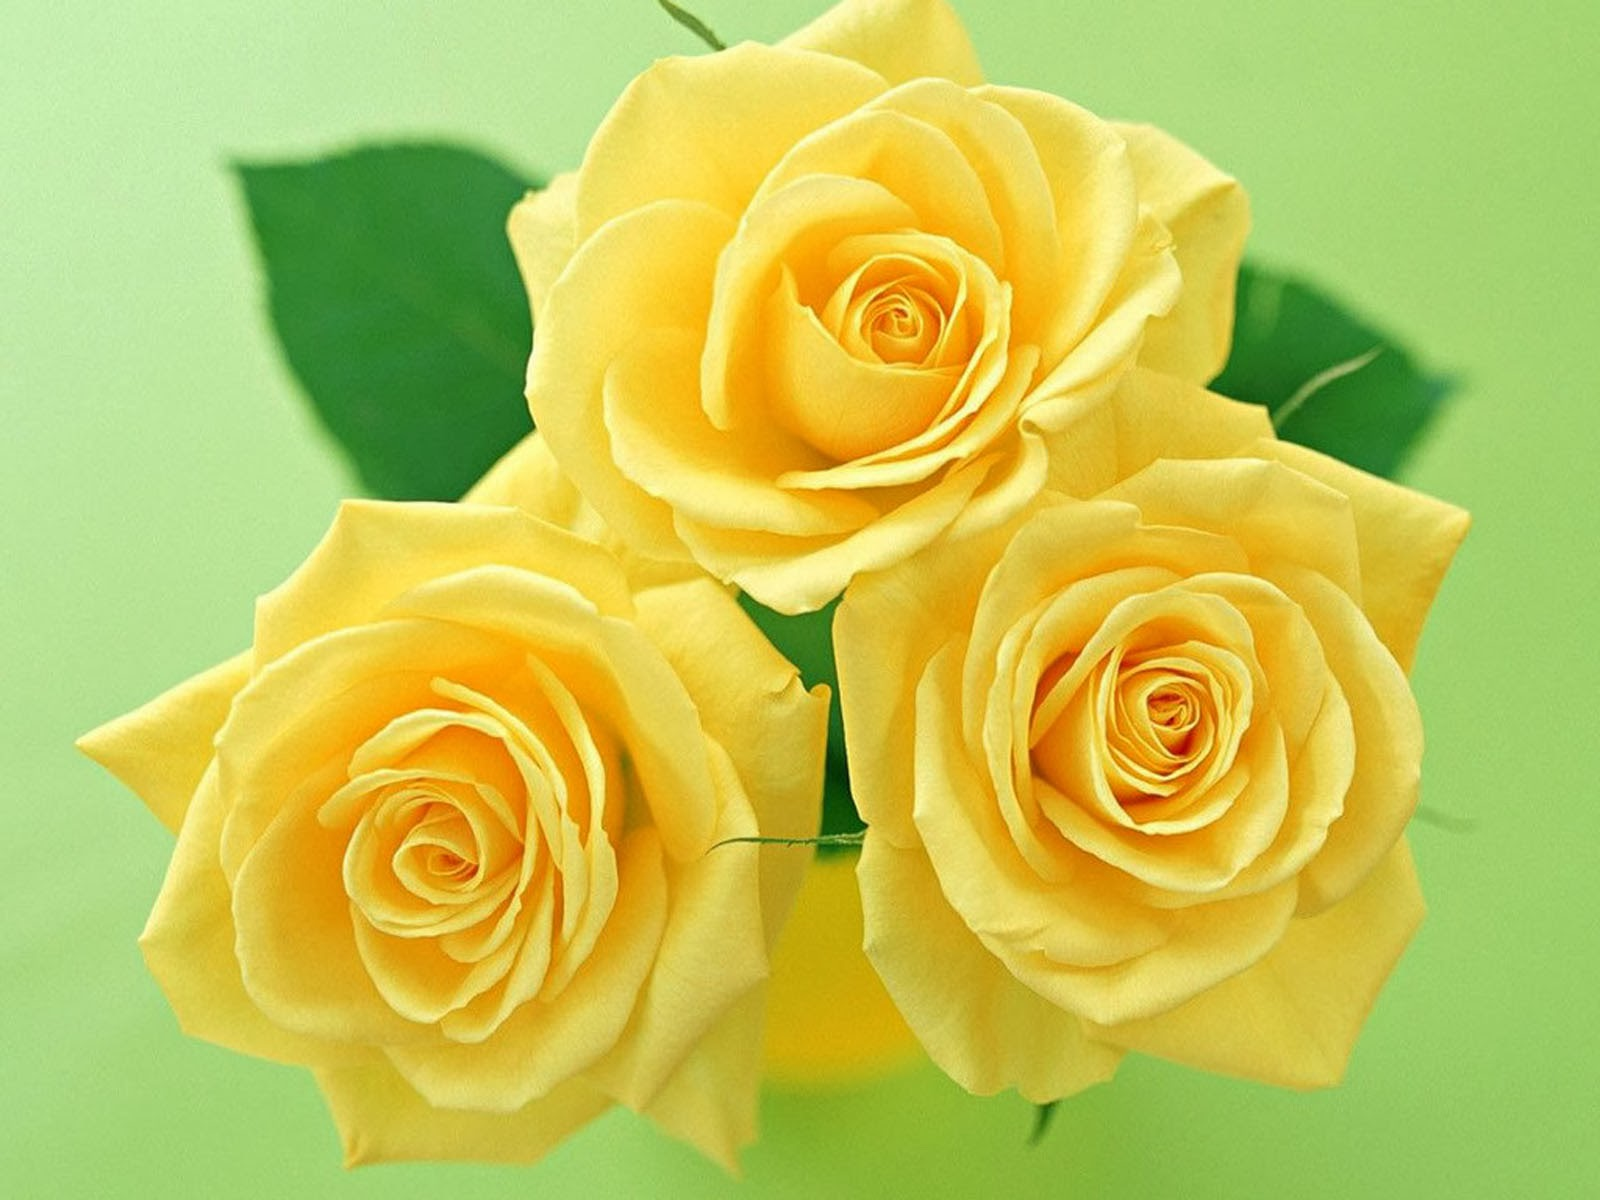 Yellow Roses Wallpaper High Definition High Quality Widescreen